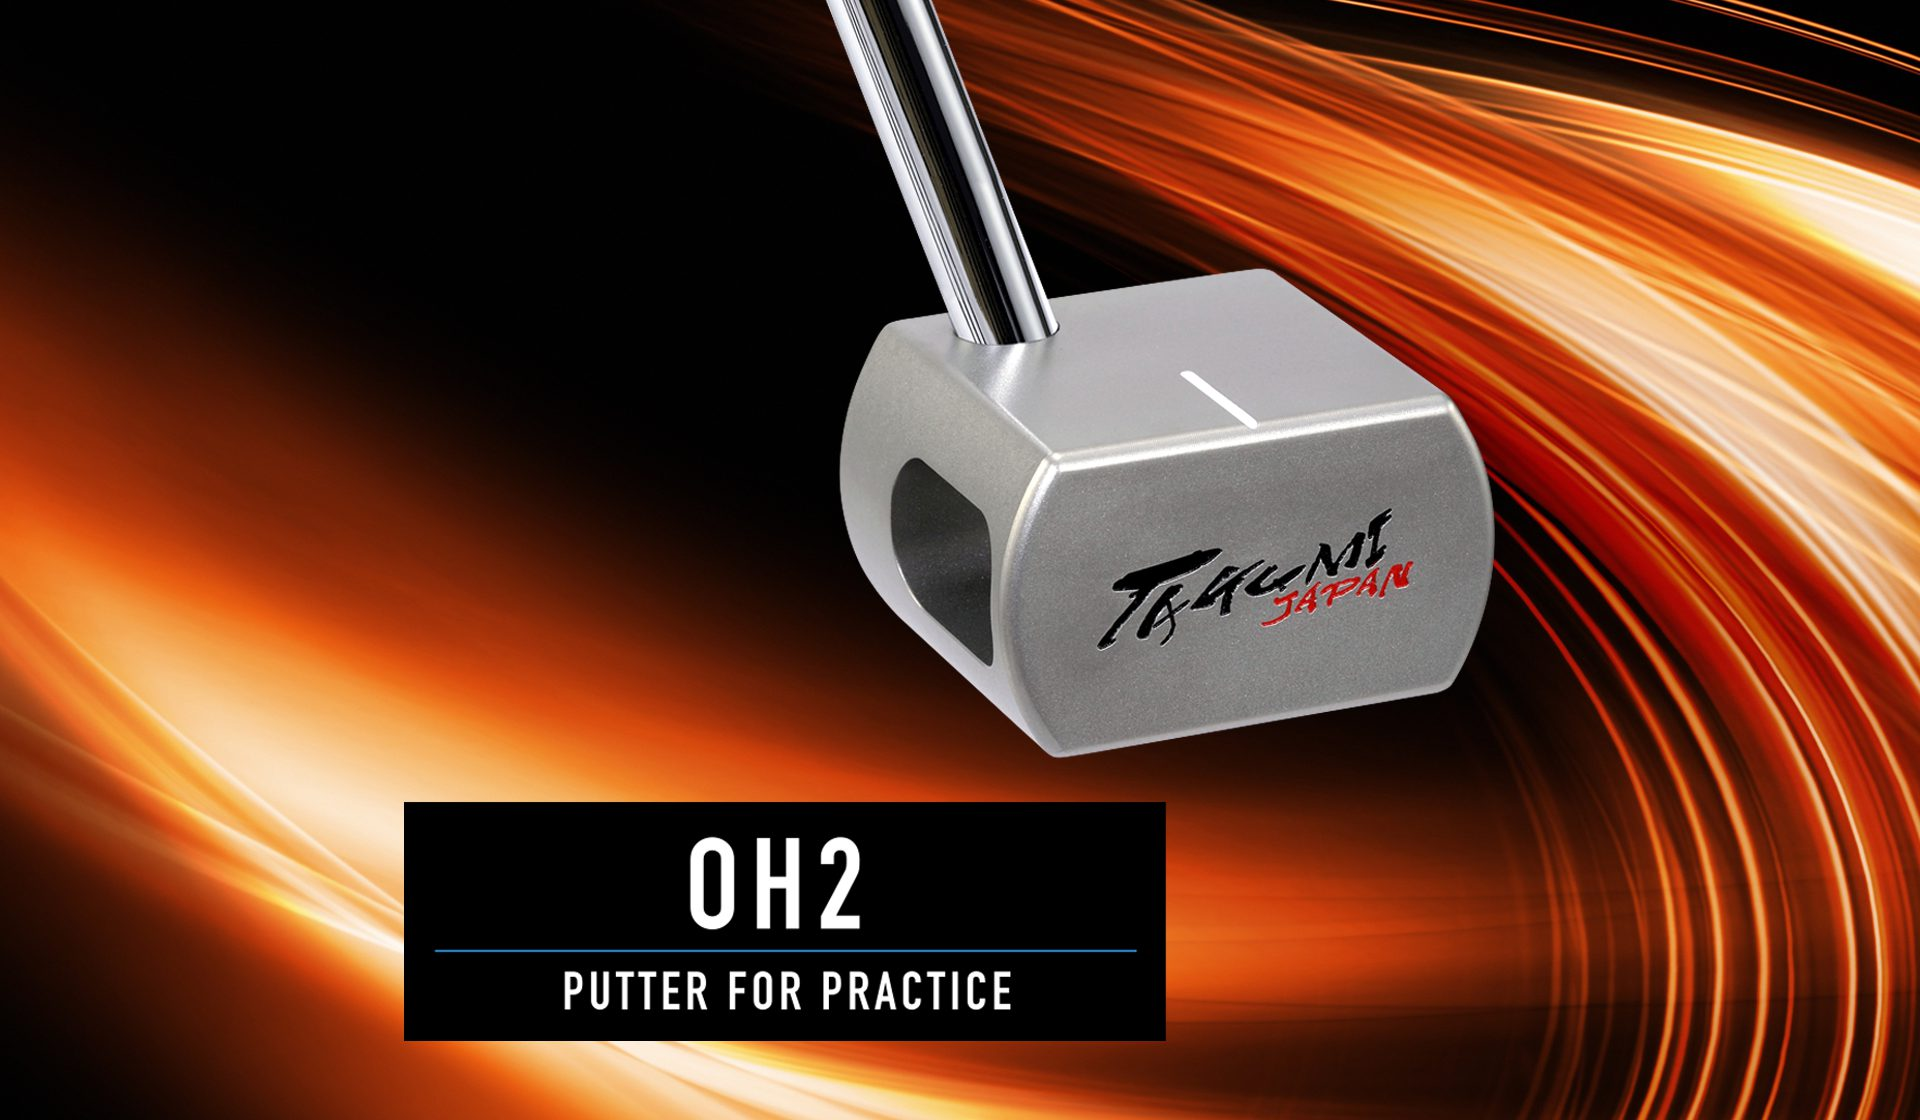 OH2 PUTTER